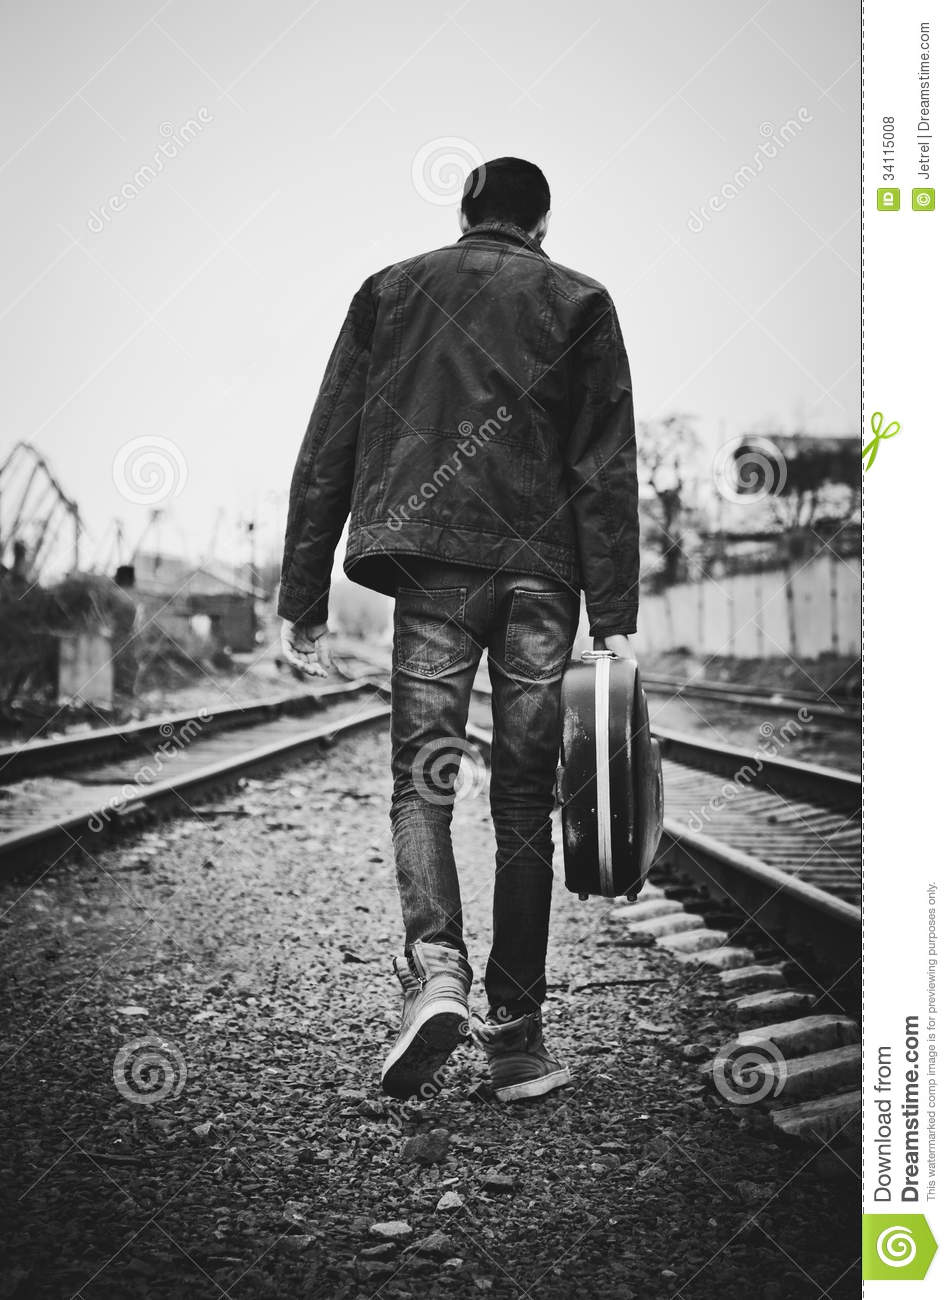 Lonely Girl Walking In Rain Wallpaper Young Man With Guitar Case In Hand Is Going Away Rear